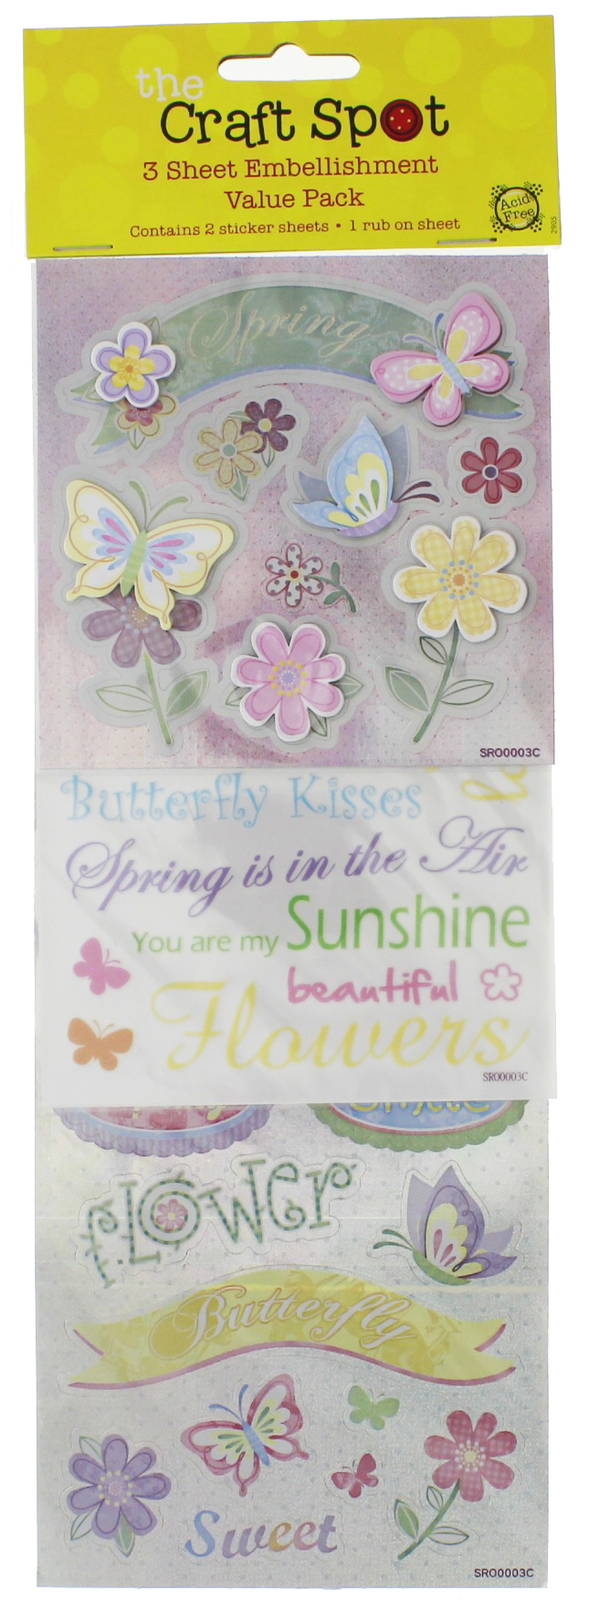 The Craft Spot Embellishment Kit - Spring